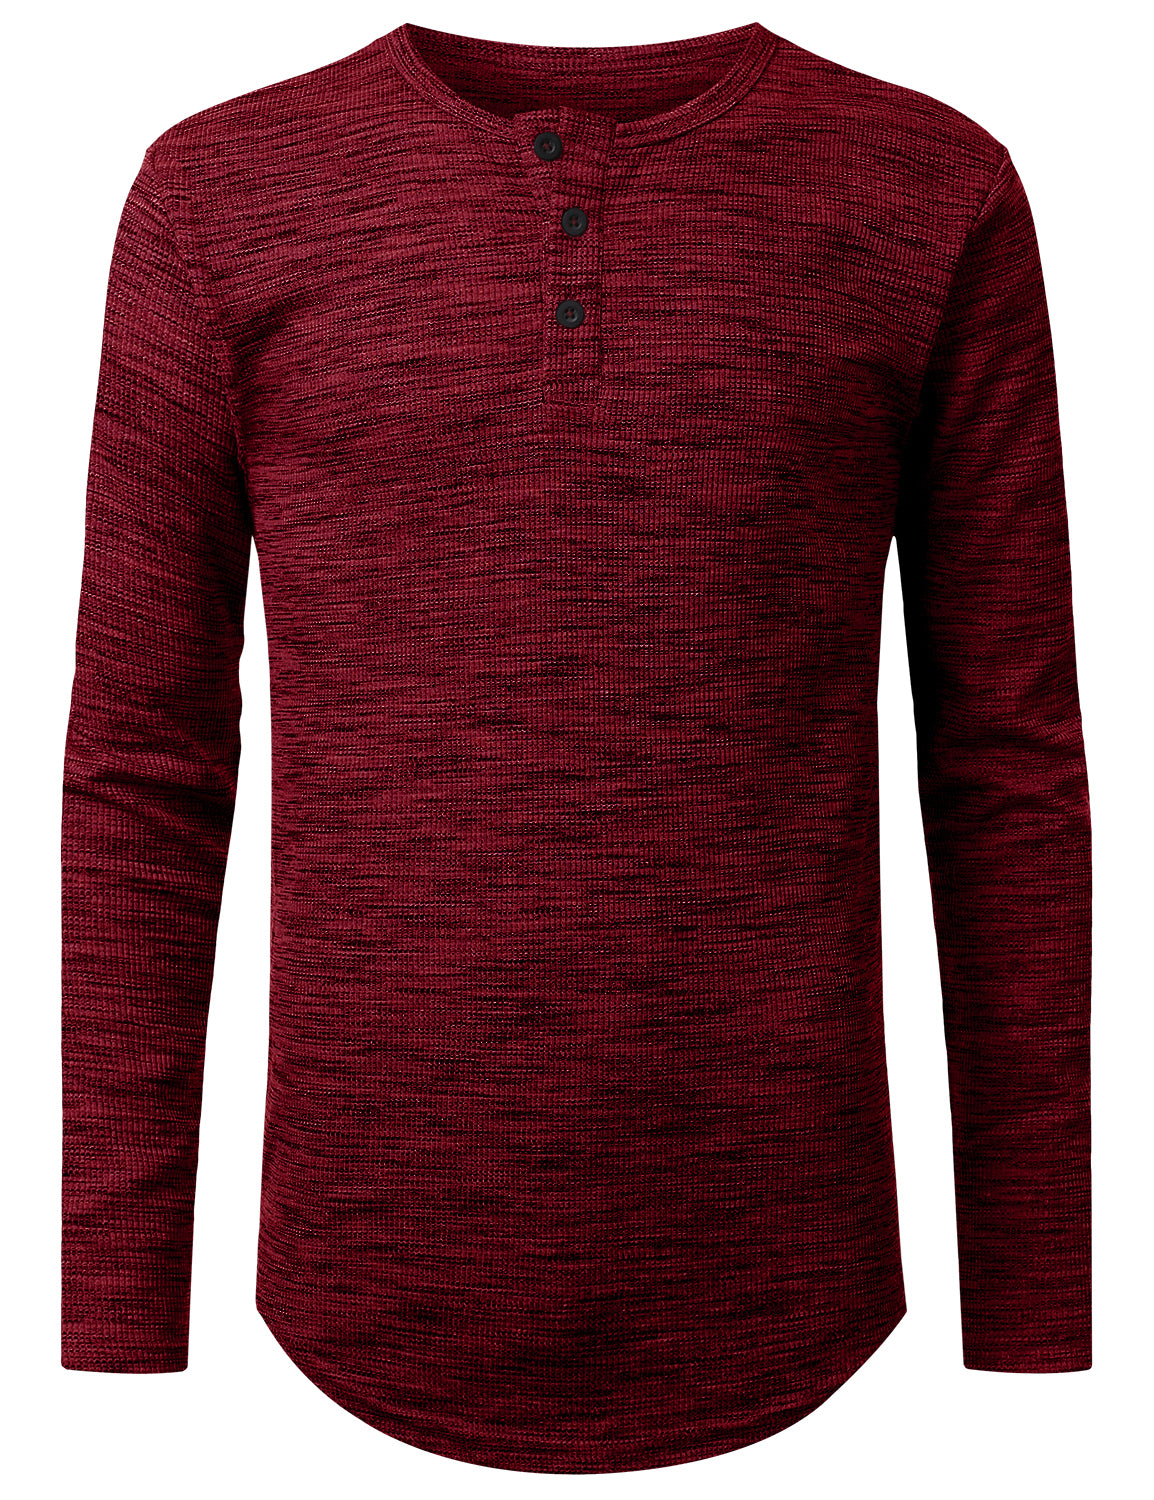 BURGUNDY 3-Button Placket Thermal T-shirt - URBANCREWS